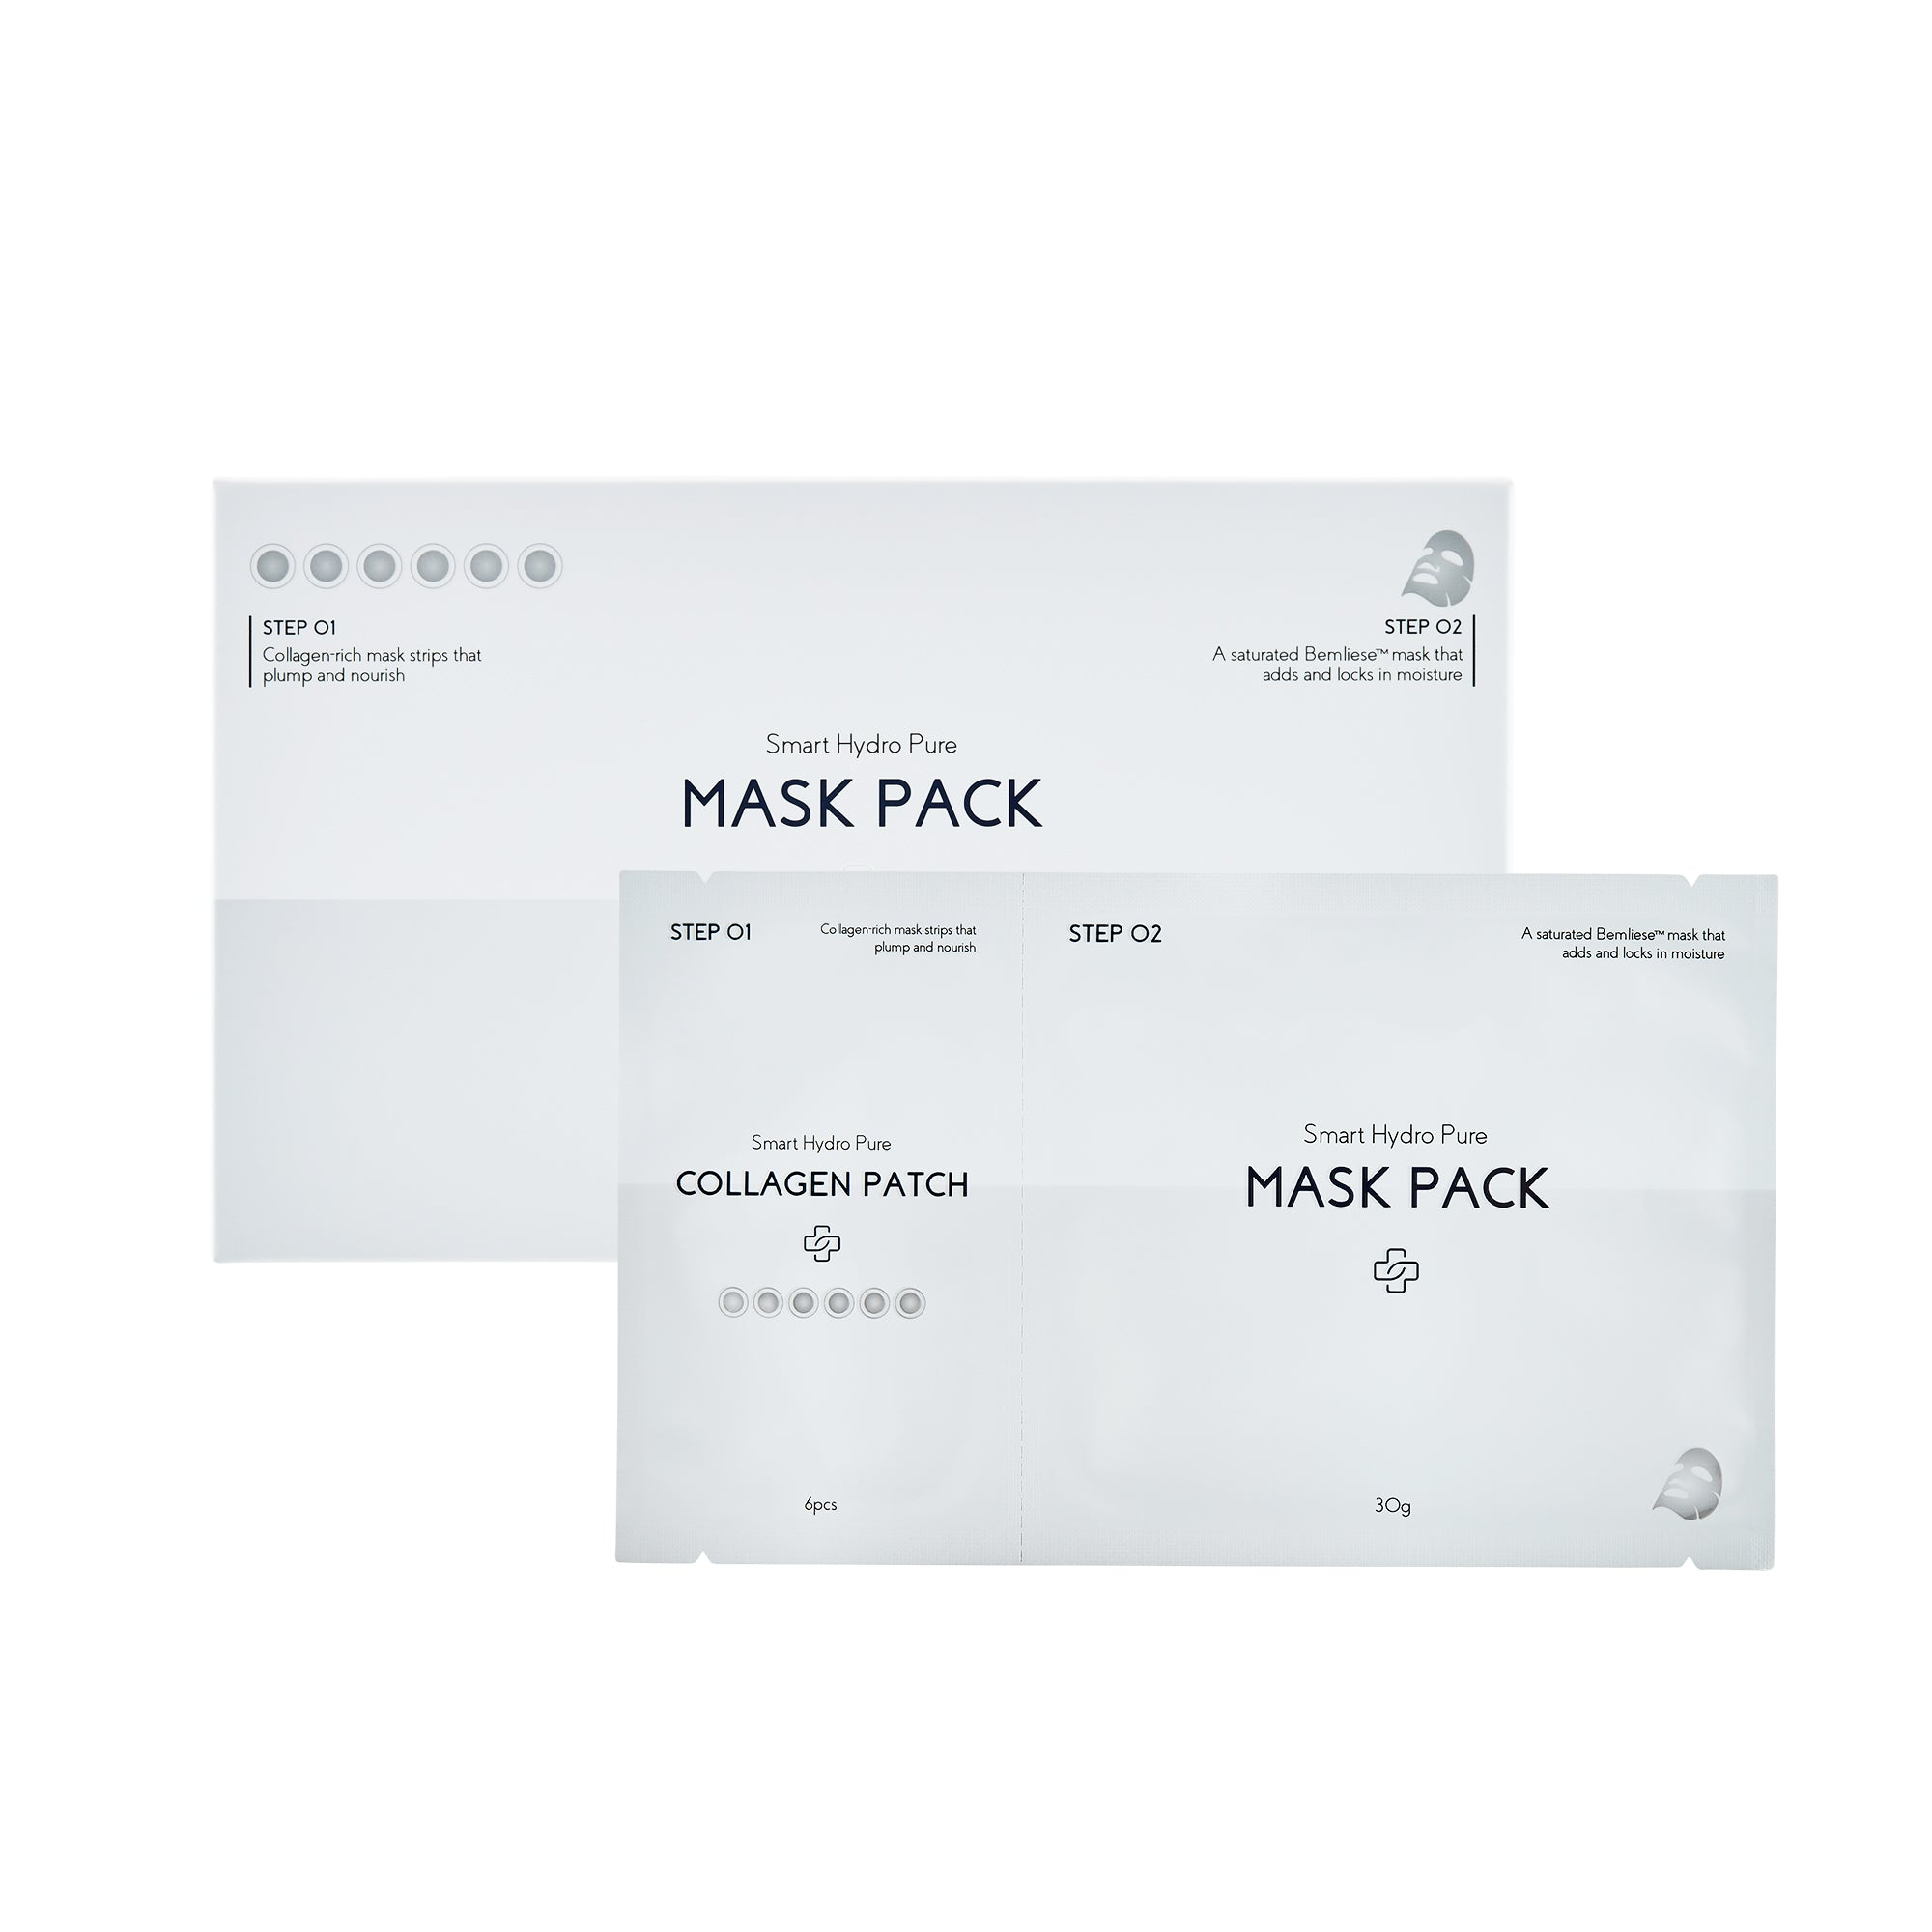 Smart Hydro Pure Mask Pack Mask by Dermabell Basic